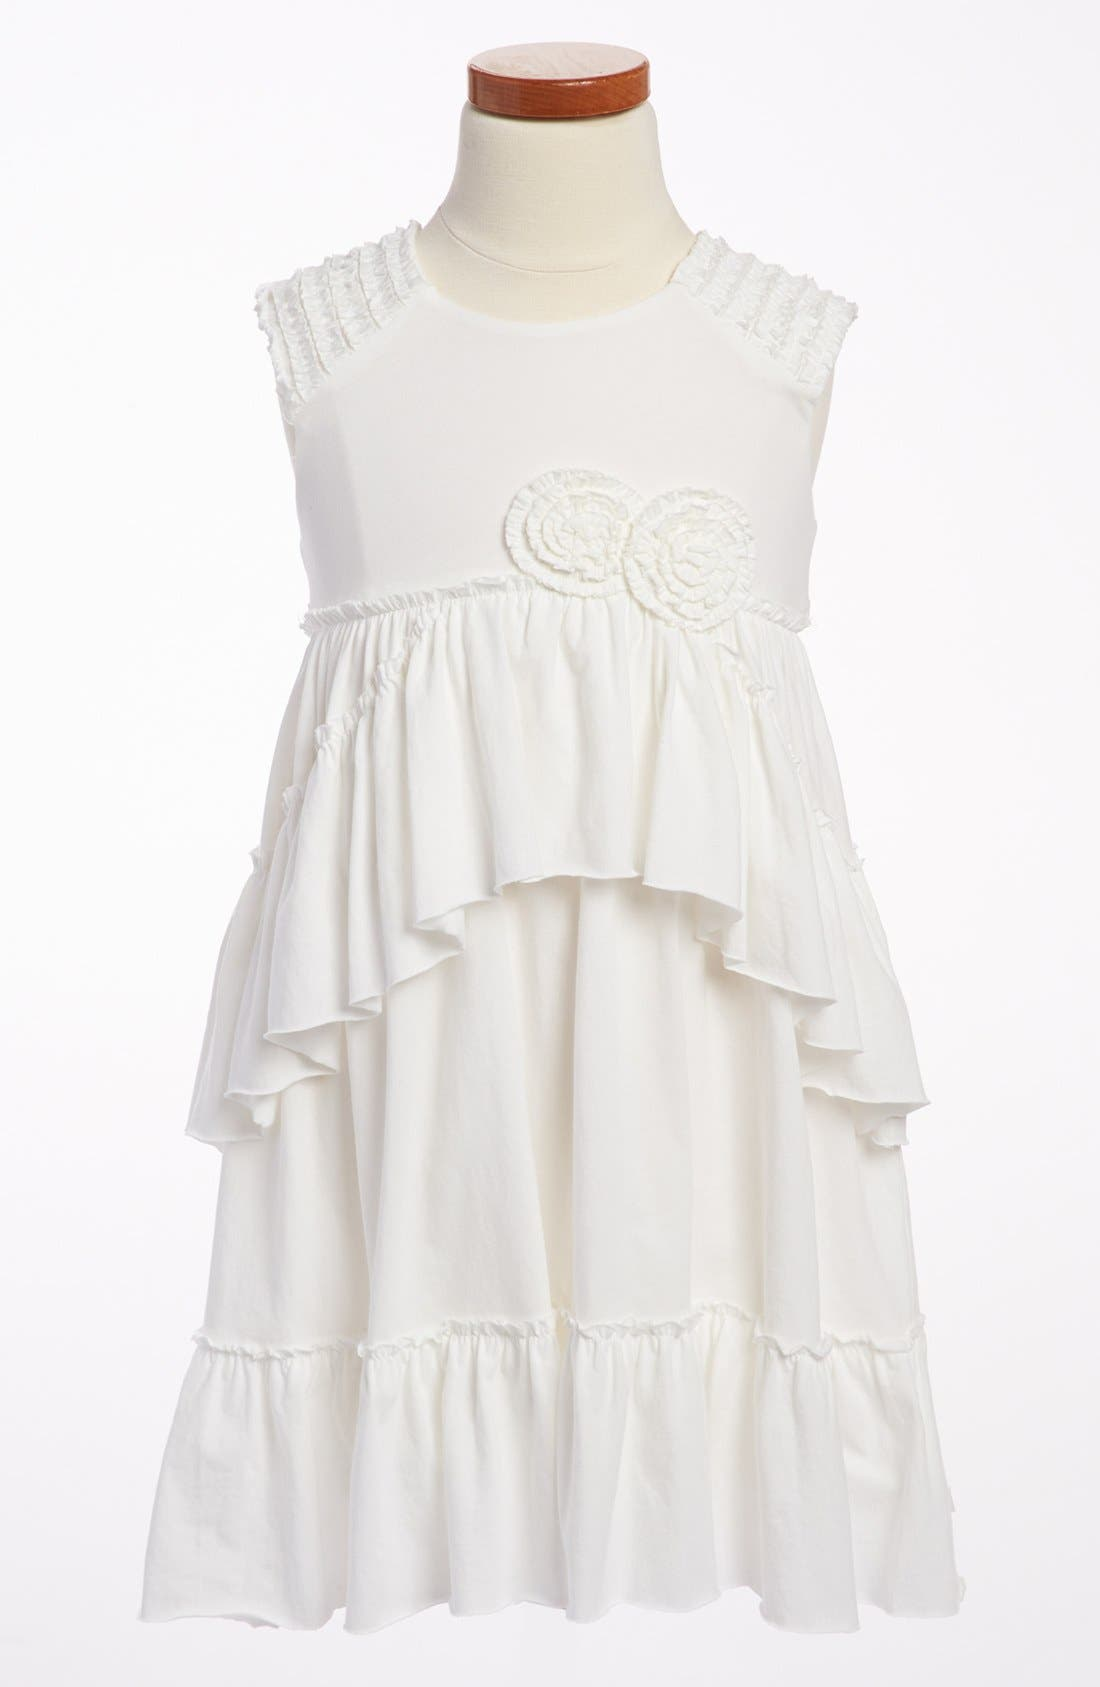 Main Image - Isobella & Chloe 'Rebecca' Ruffle Dress (Little Girls & Big Girls)